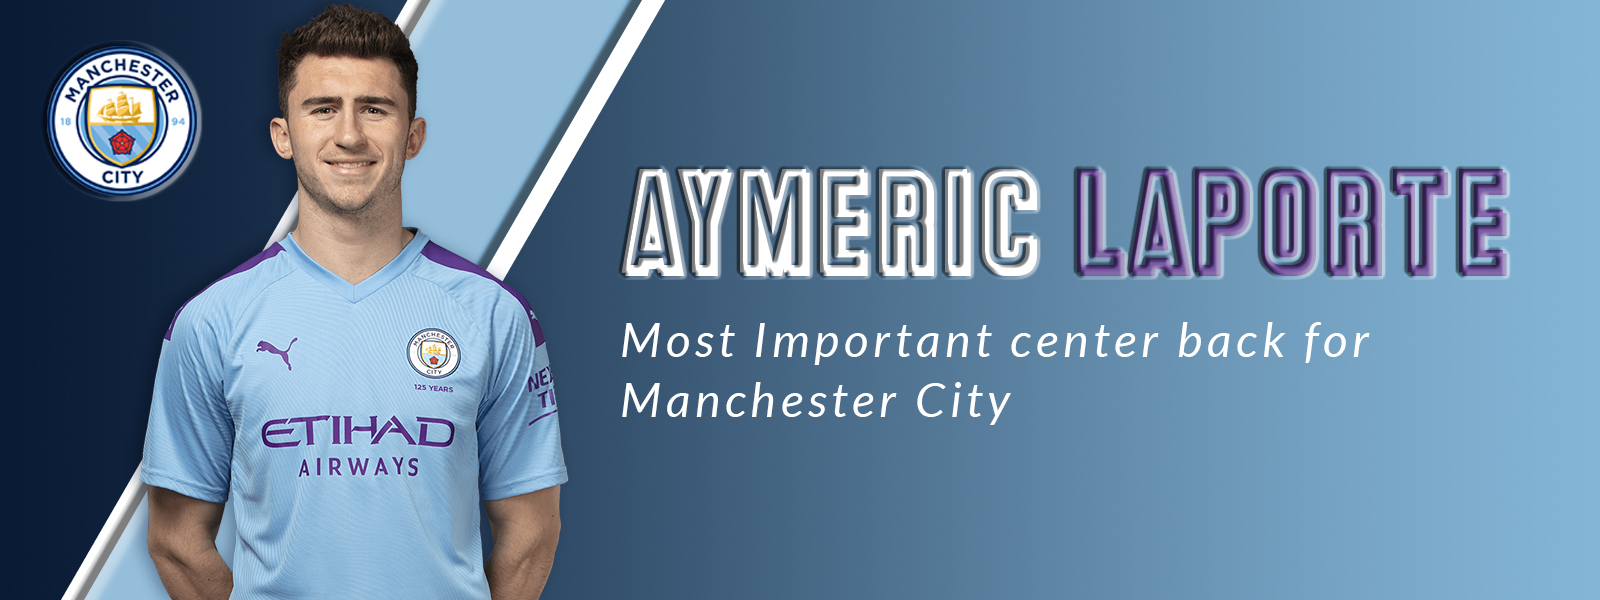 Aymeric Laporte - Most Important Center Back For Manchester City